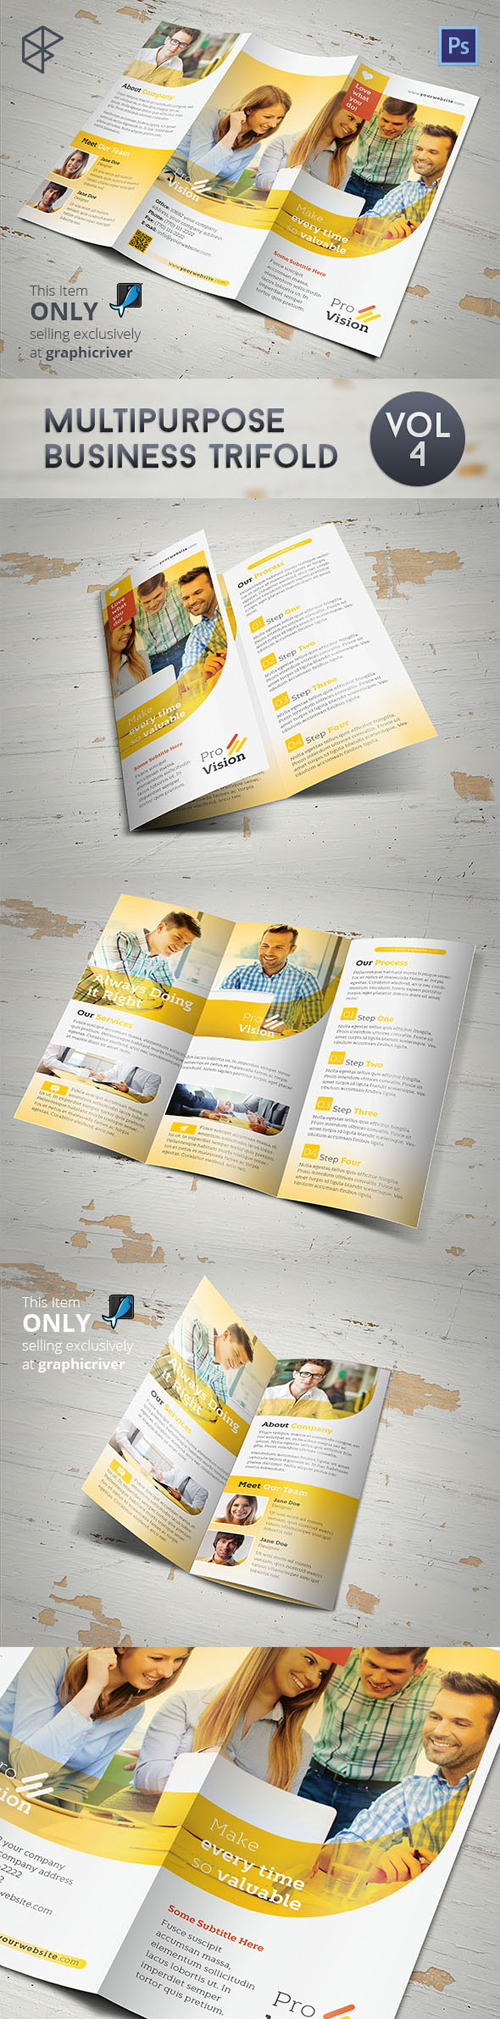 Multipurpose Business Trifold Brochure Design